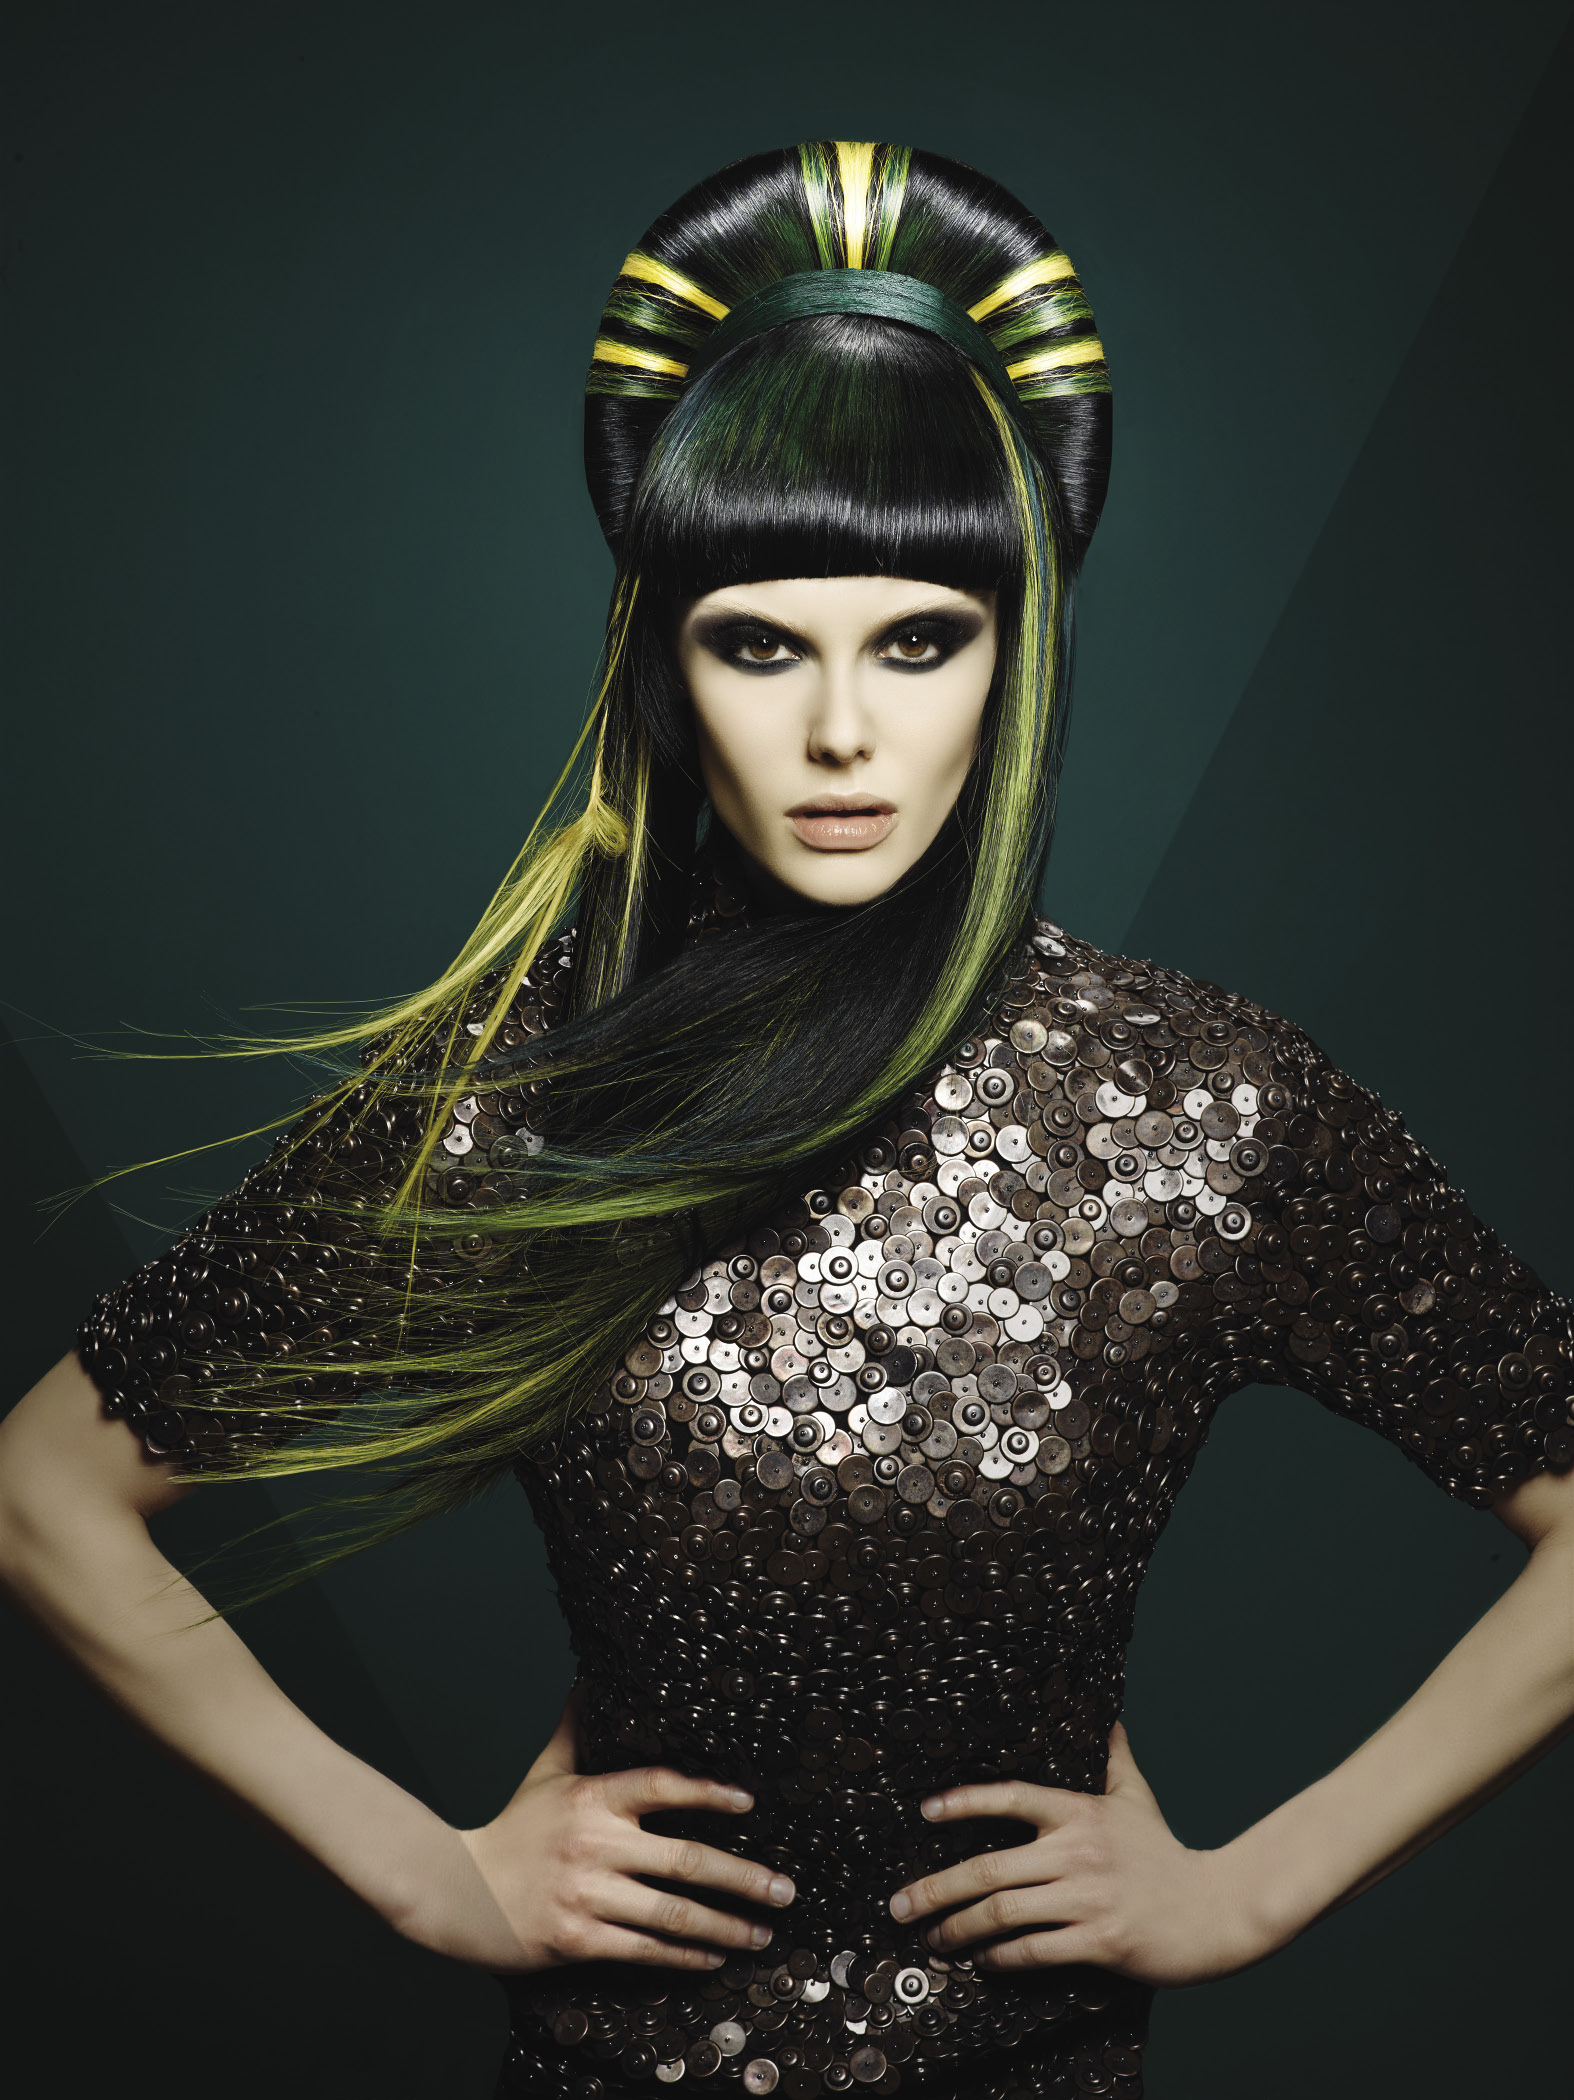 Perfectly crafted bangs are the focus, while strong green and yellow locks stream from a headband made entirely from hair.